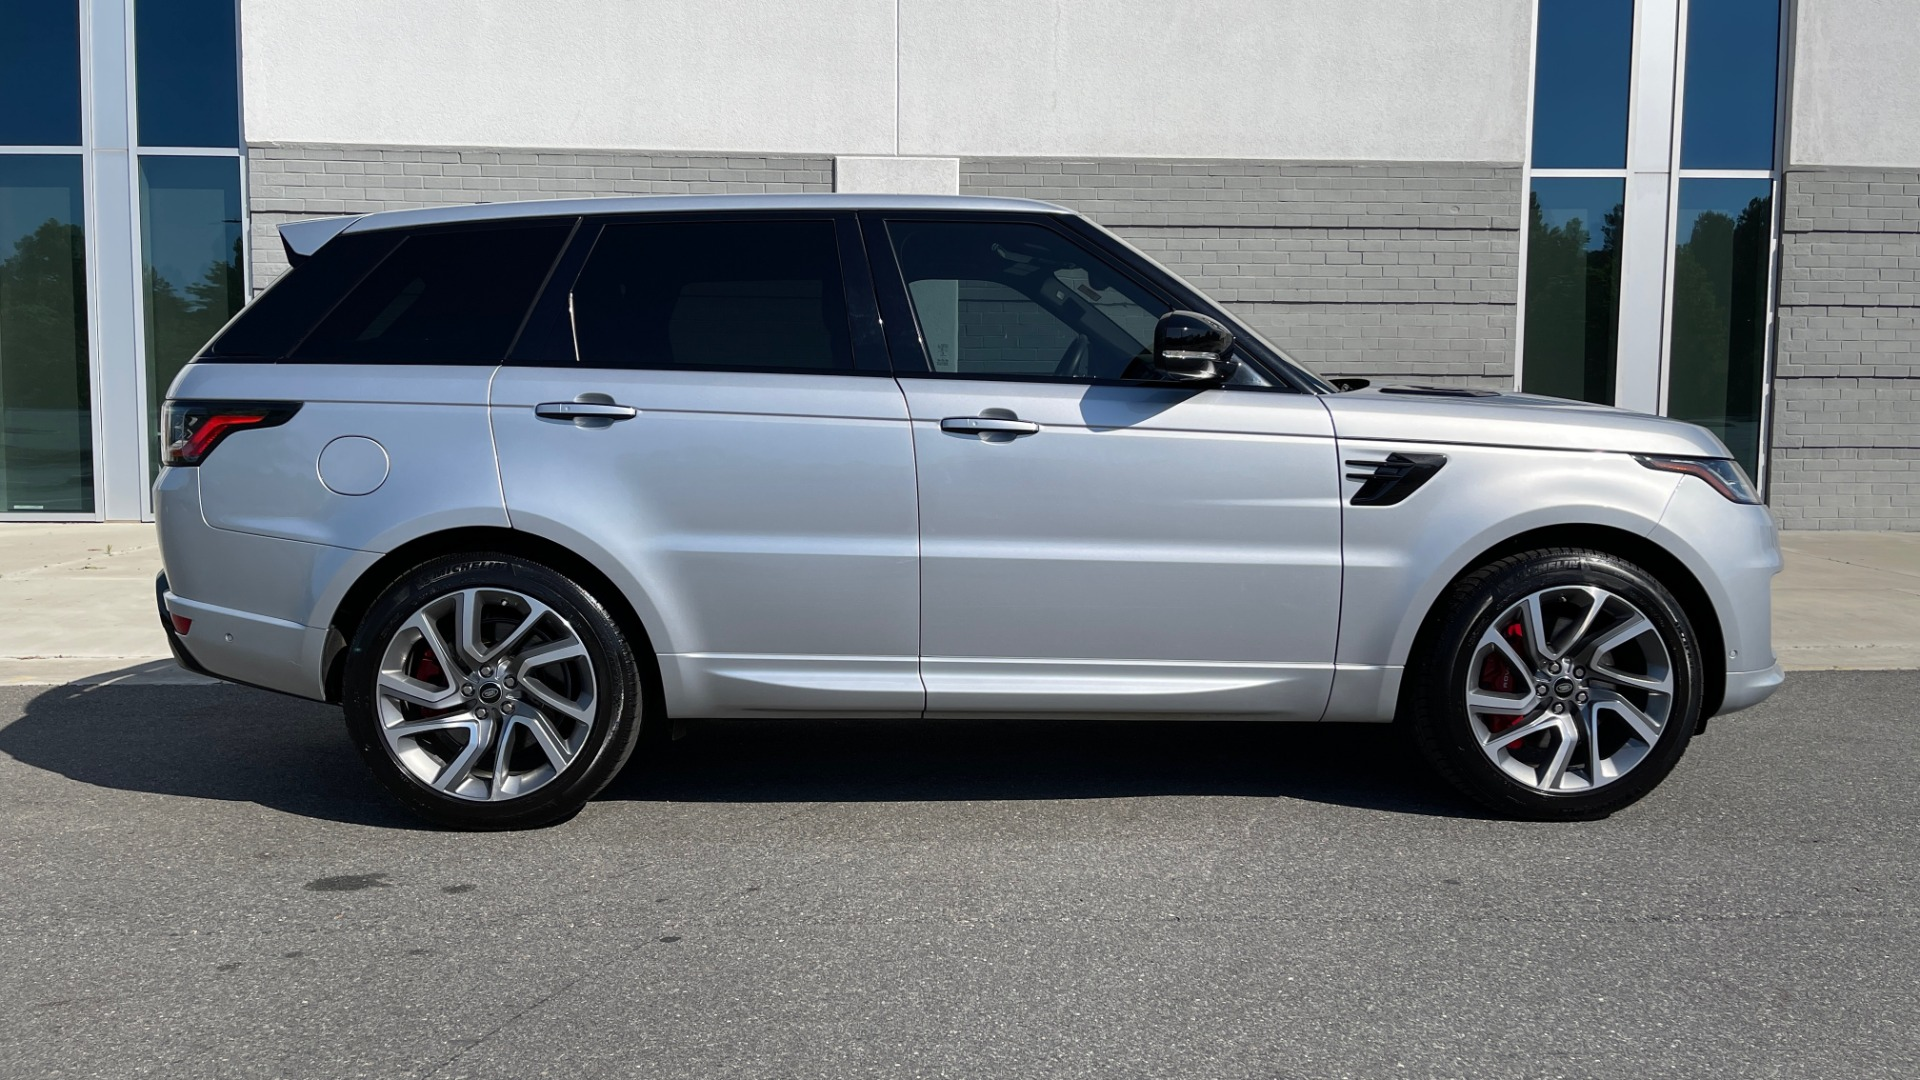 Used 2019 Land Rover RANGE ROVER SPORT HSE DYNAMIC / 3.0L SC V6 / 8-SPD / APPLE / NAV / SUNROOF / REARVIEW for sale Sold at Formula Imports in Charlotte NC 28227 5